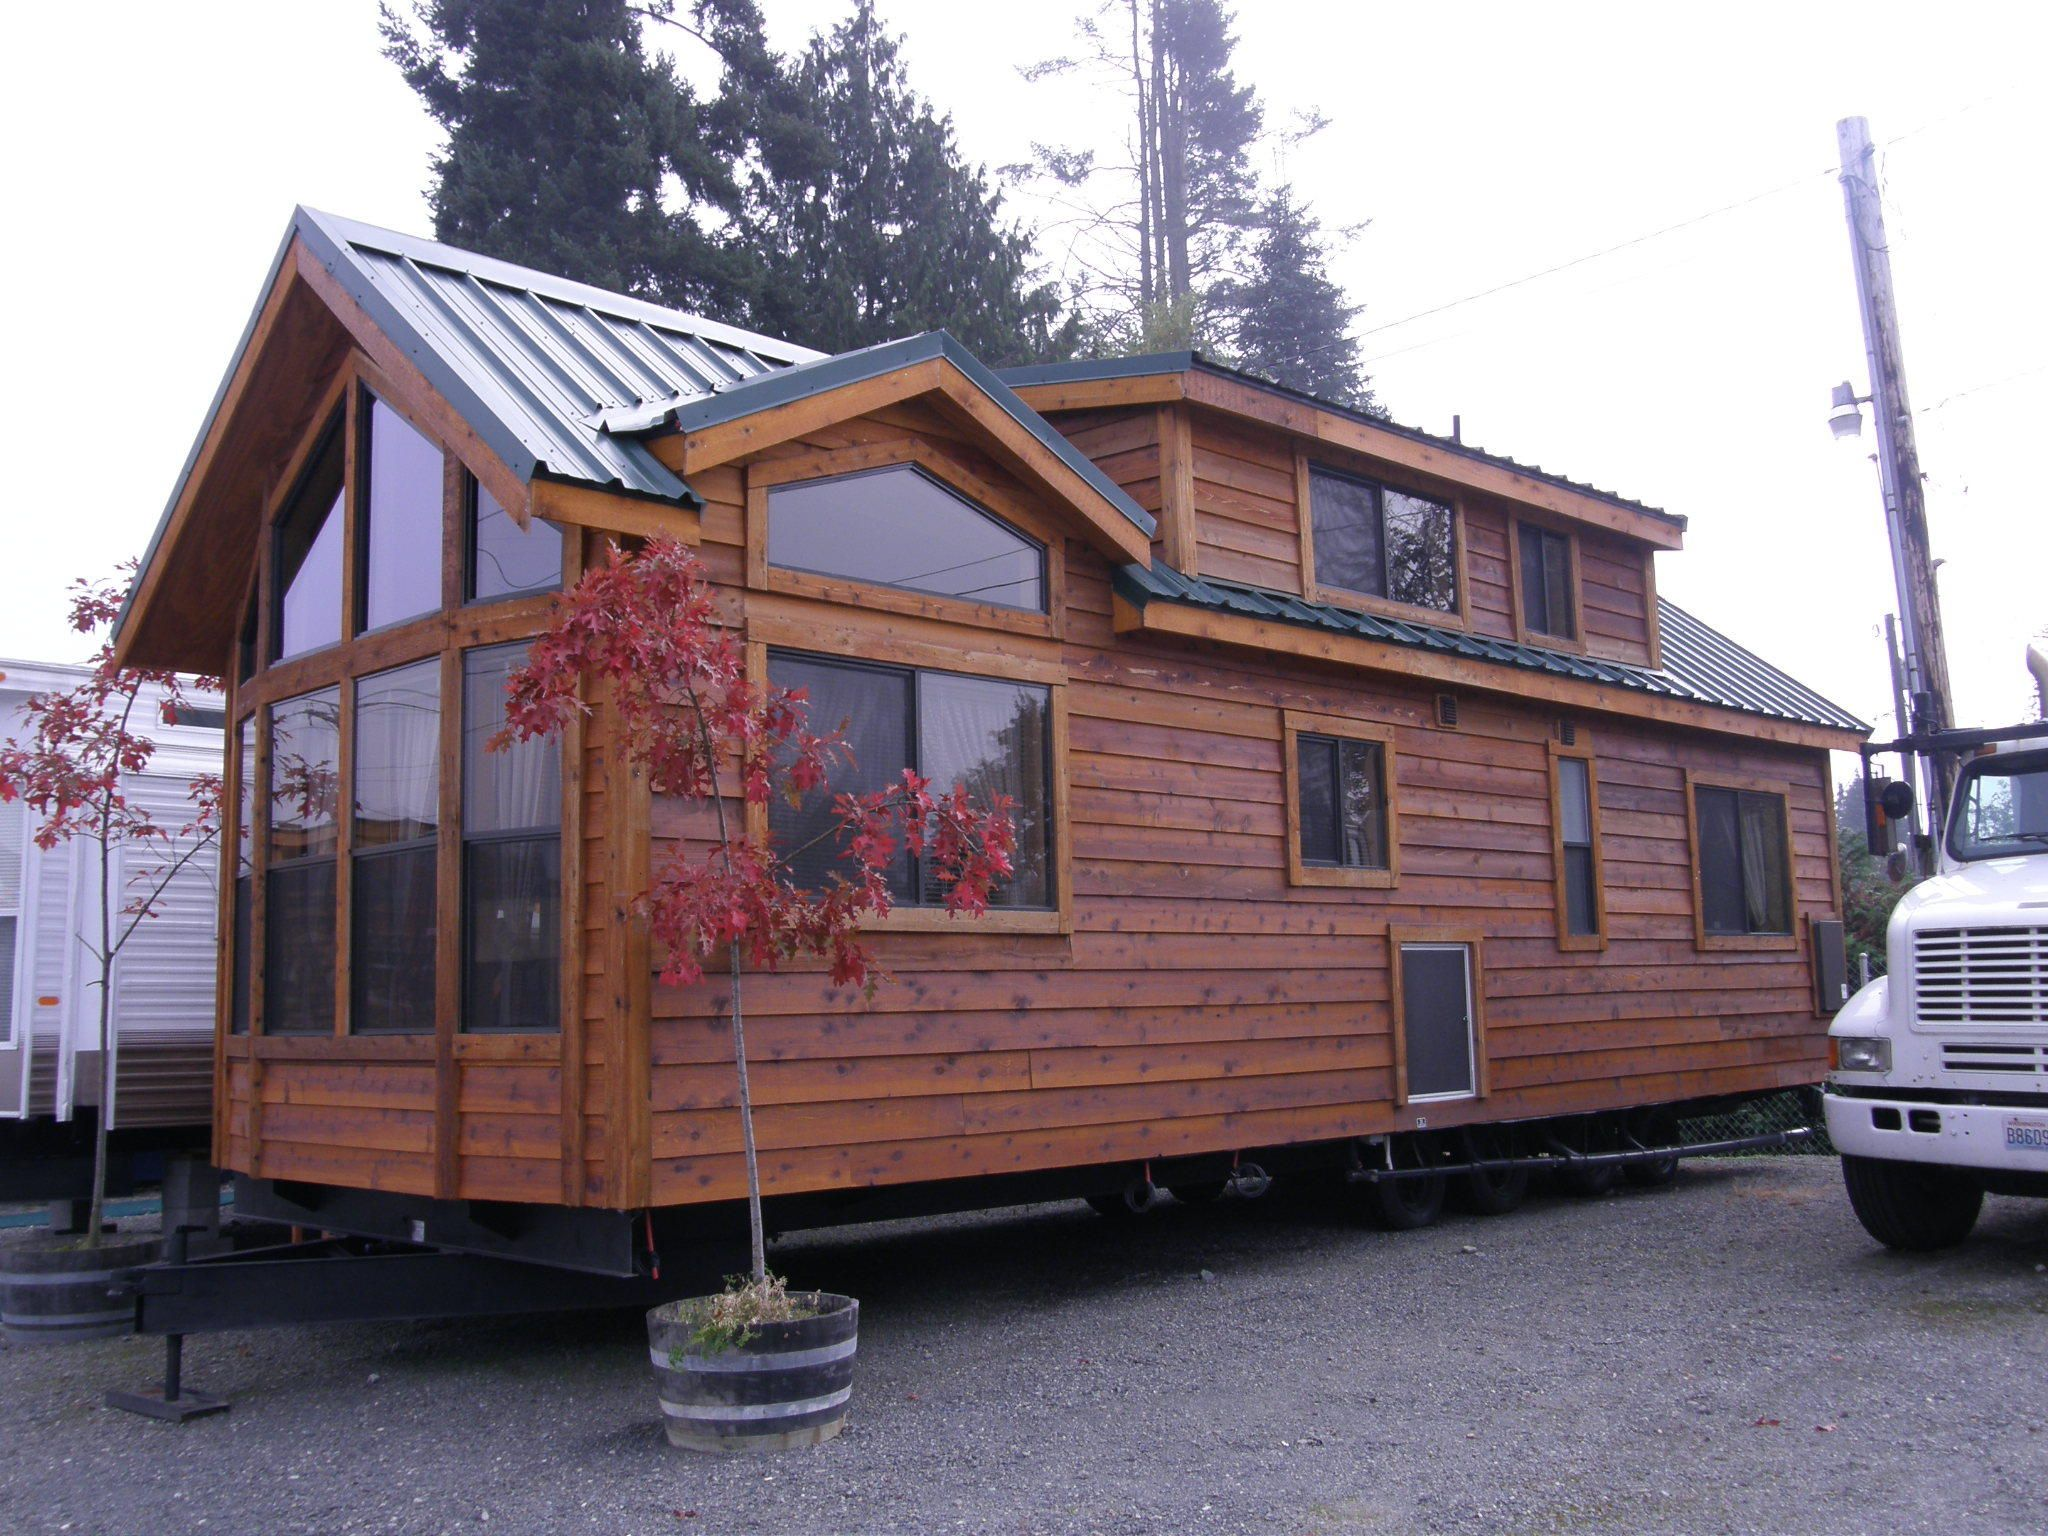 Tiny houses on trailers for sale - House On Wheels For Sale Visit Open Big Tiny House On Wheels At Monroe